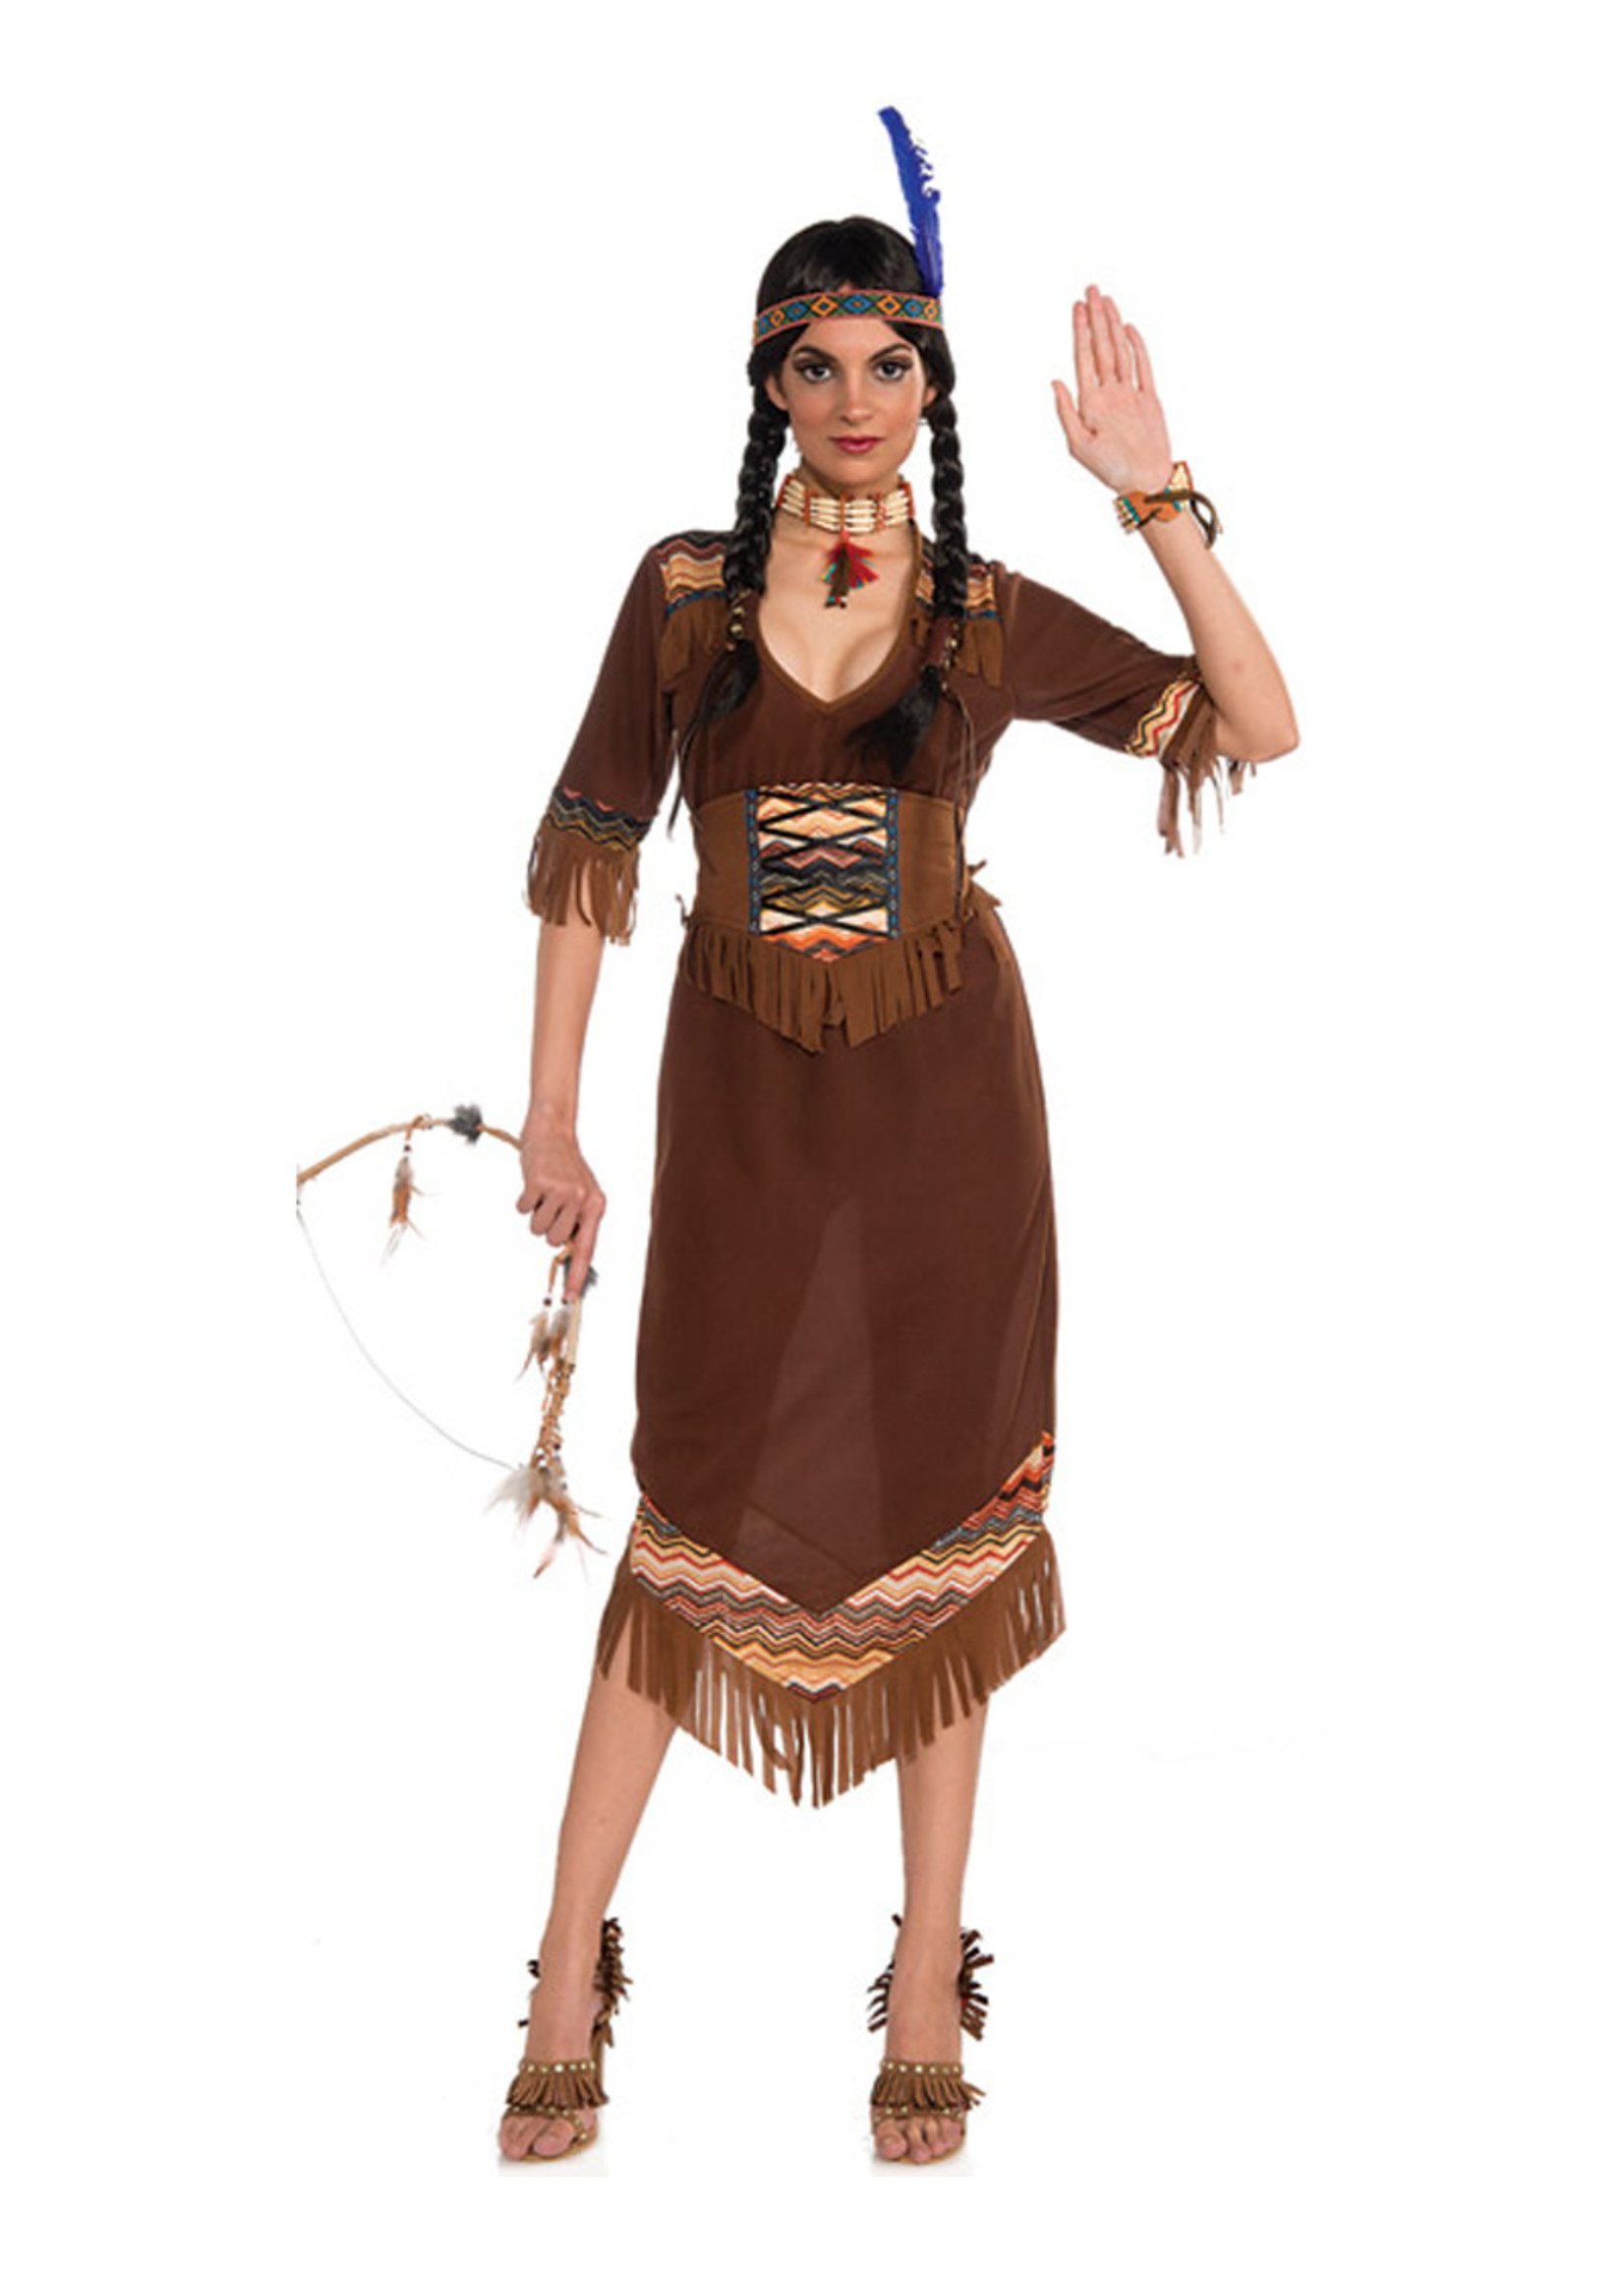 Princess Little Deer Costume - Women's